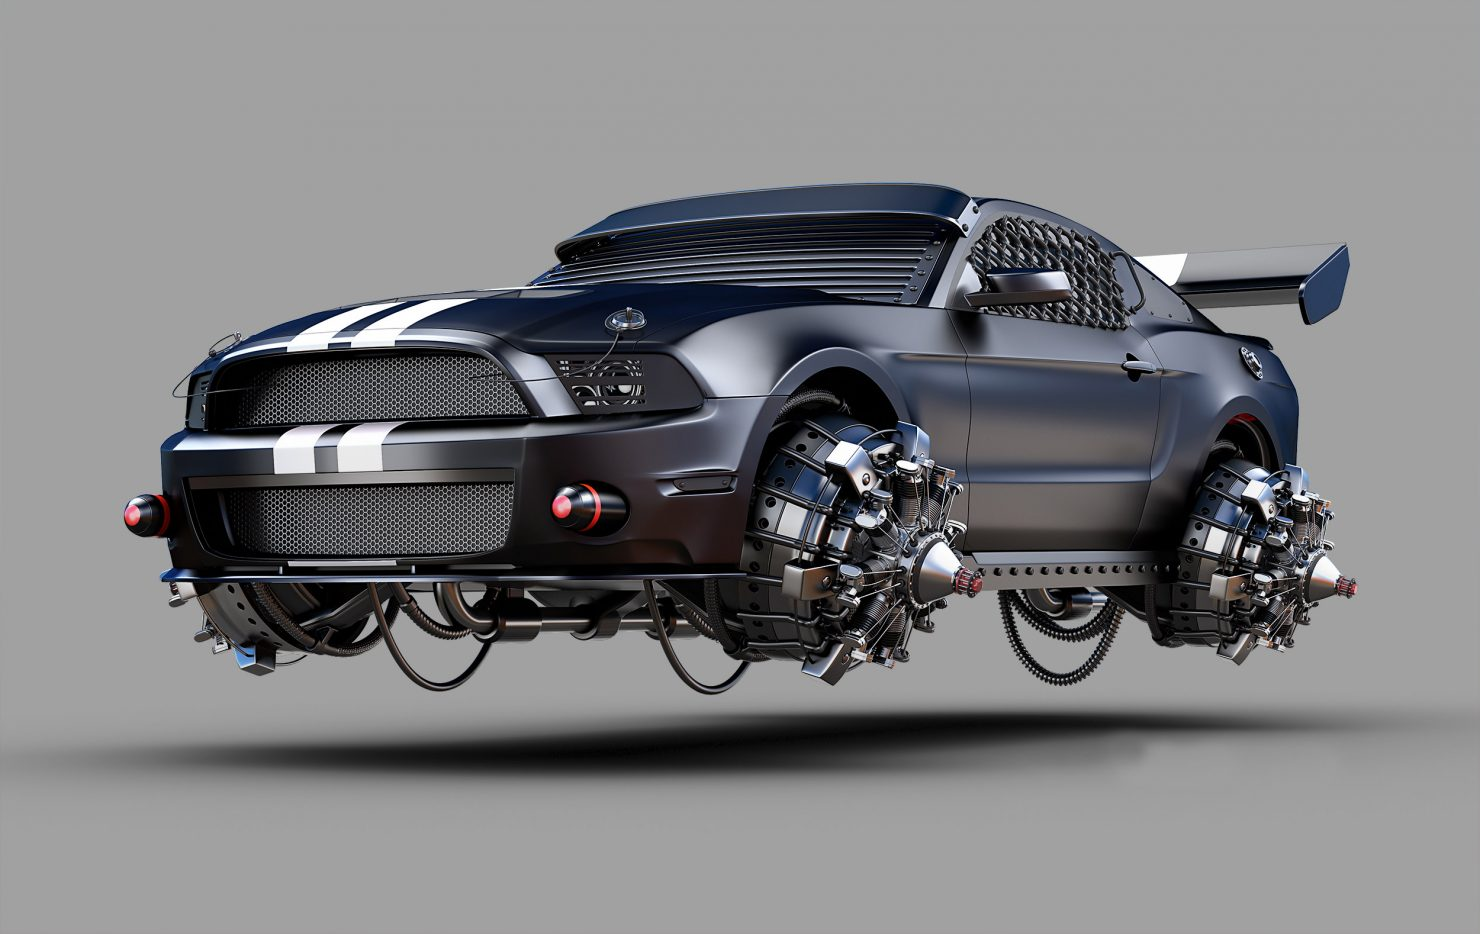 HOVER MUSTANG 1480x934 - The Vehicles of Jomar Machado